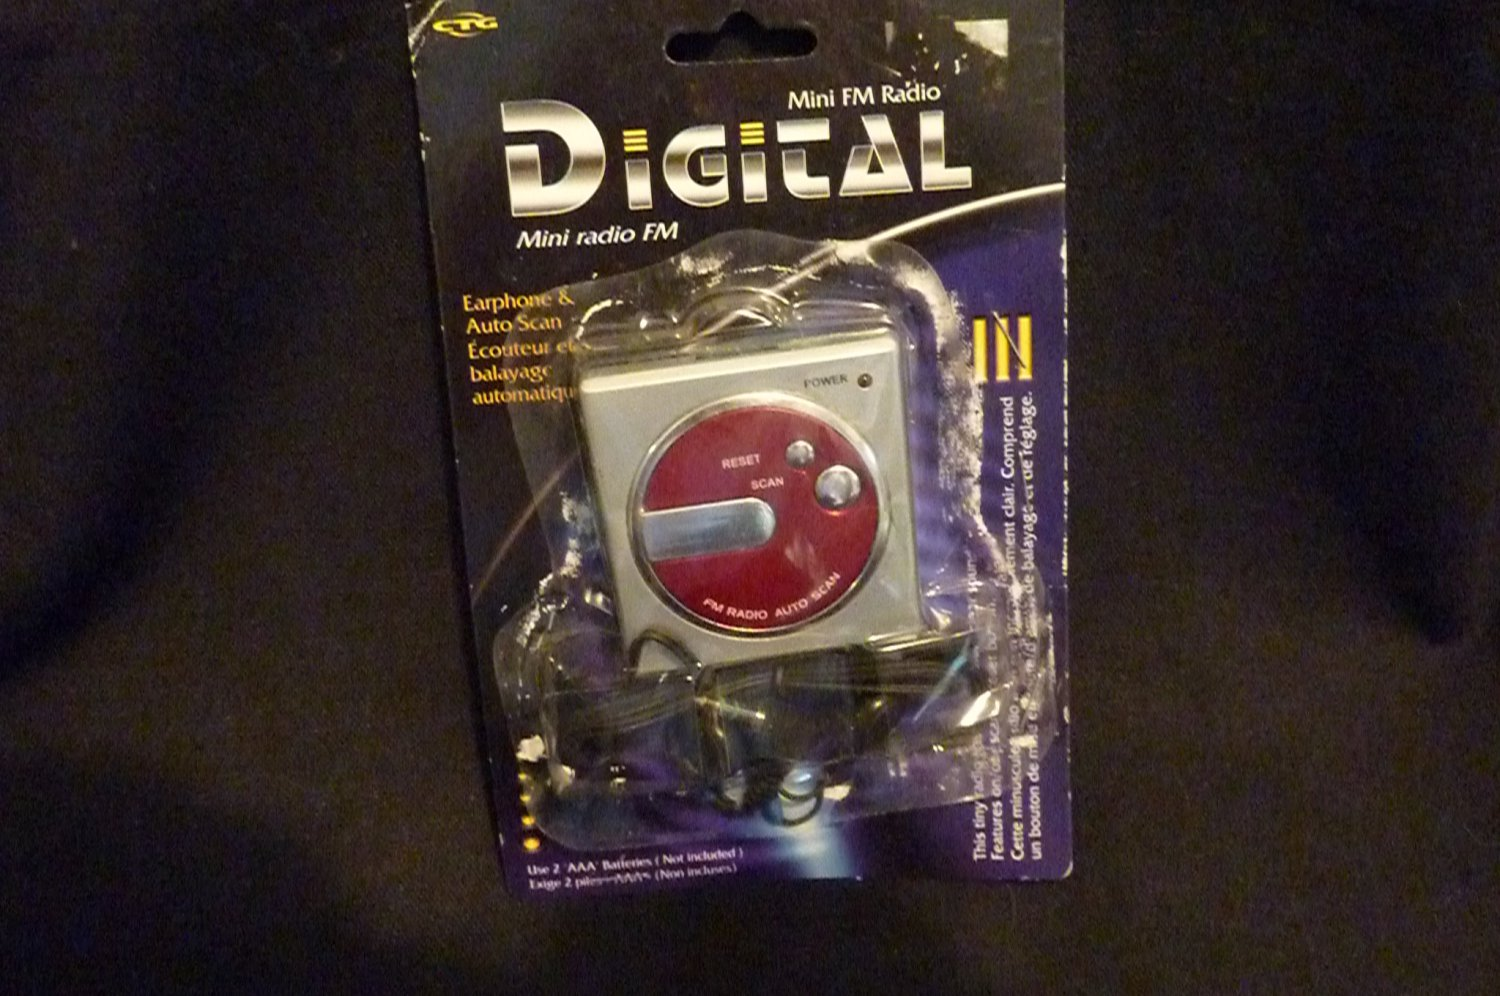 Mini FM Digital Radio #31136 with Earphone and Auto Scan